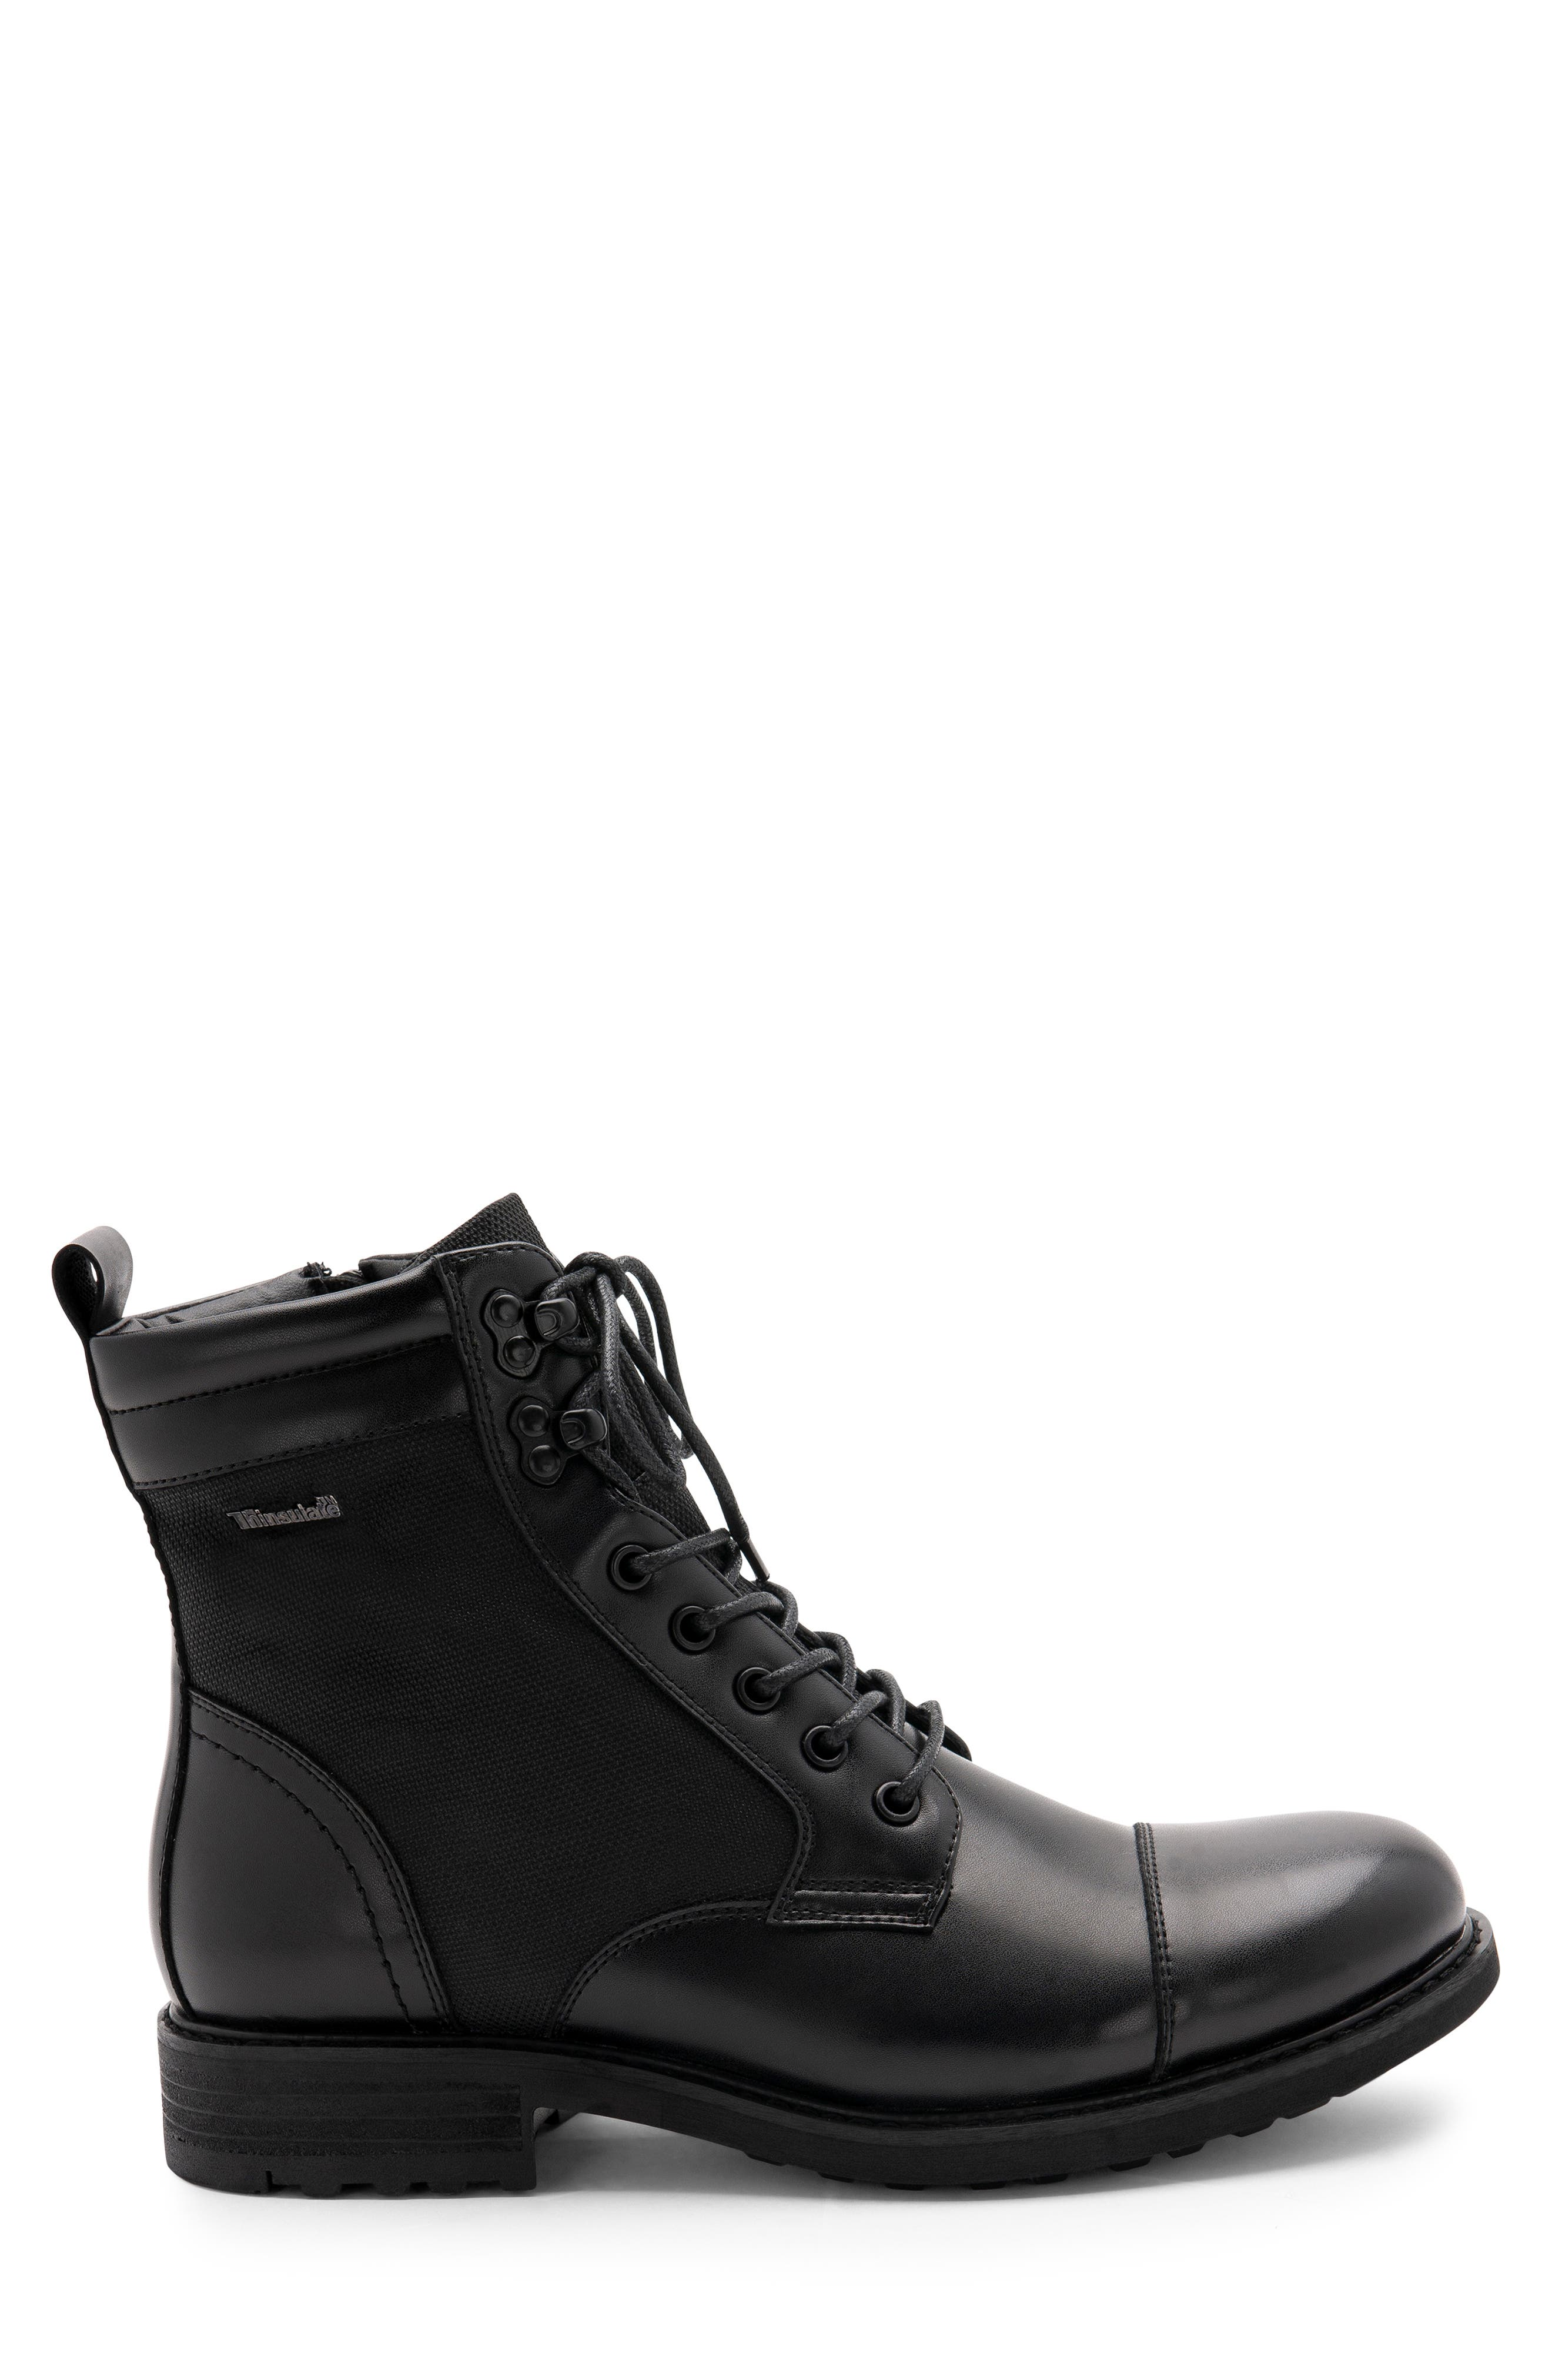 Paxton Waterproof Cap Toe Boot,                             Alternate thumbnail 3, color,                             BLACK LEATHER